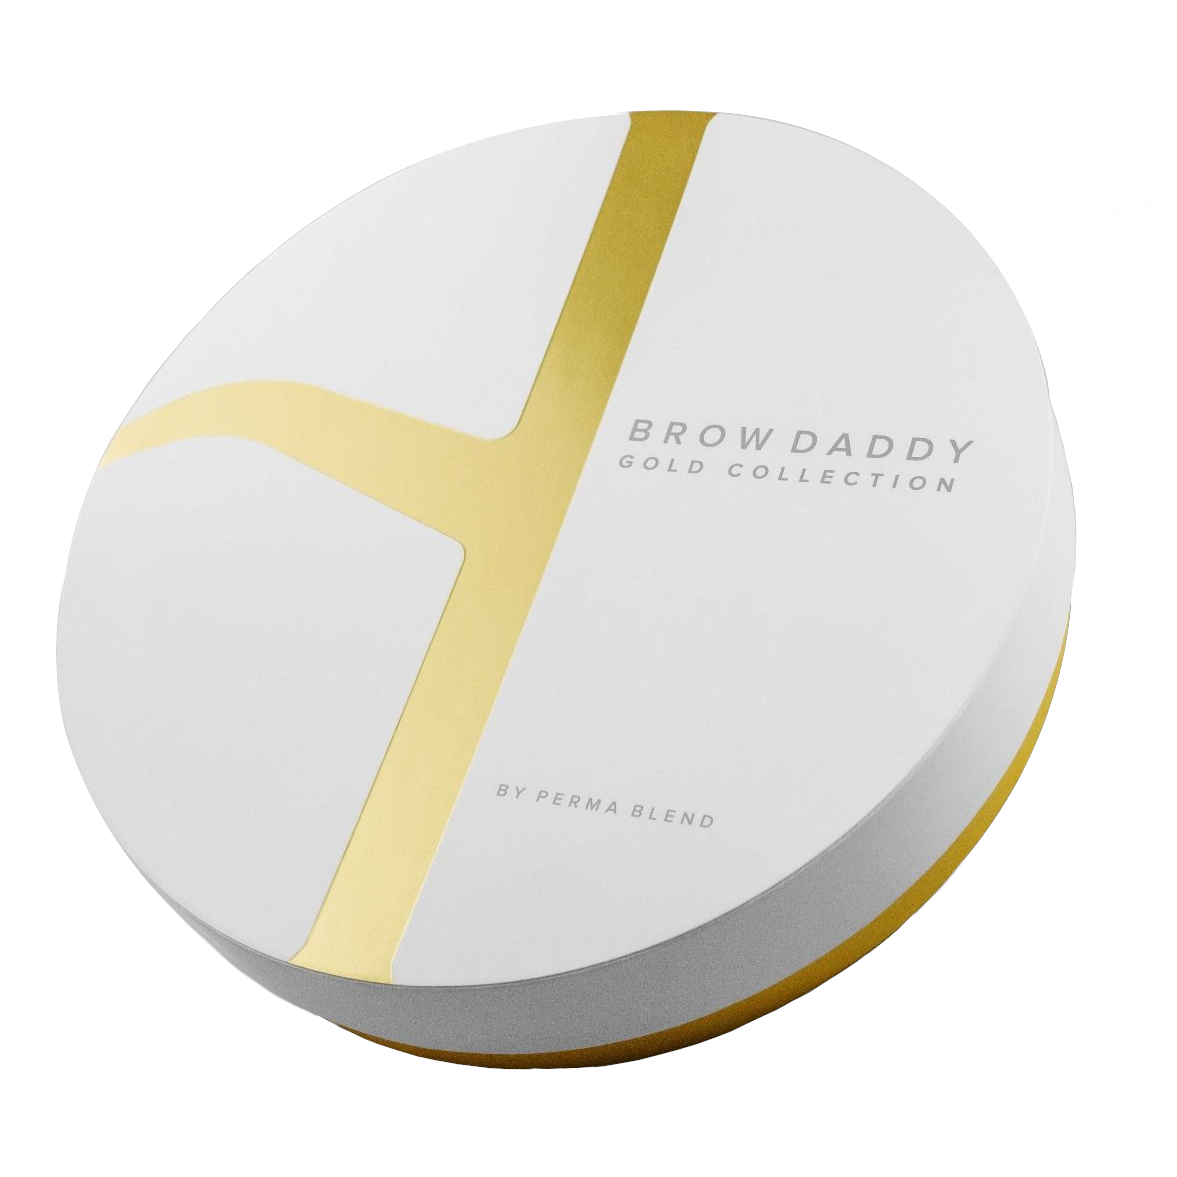 Perma Blend Brow Daddy Set